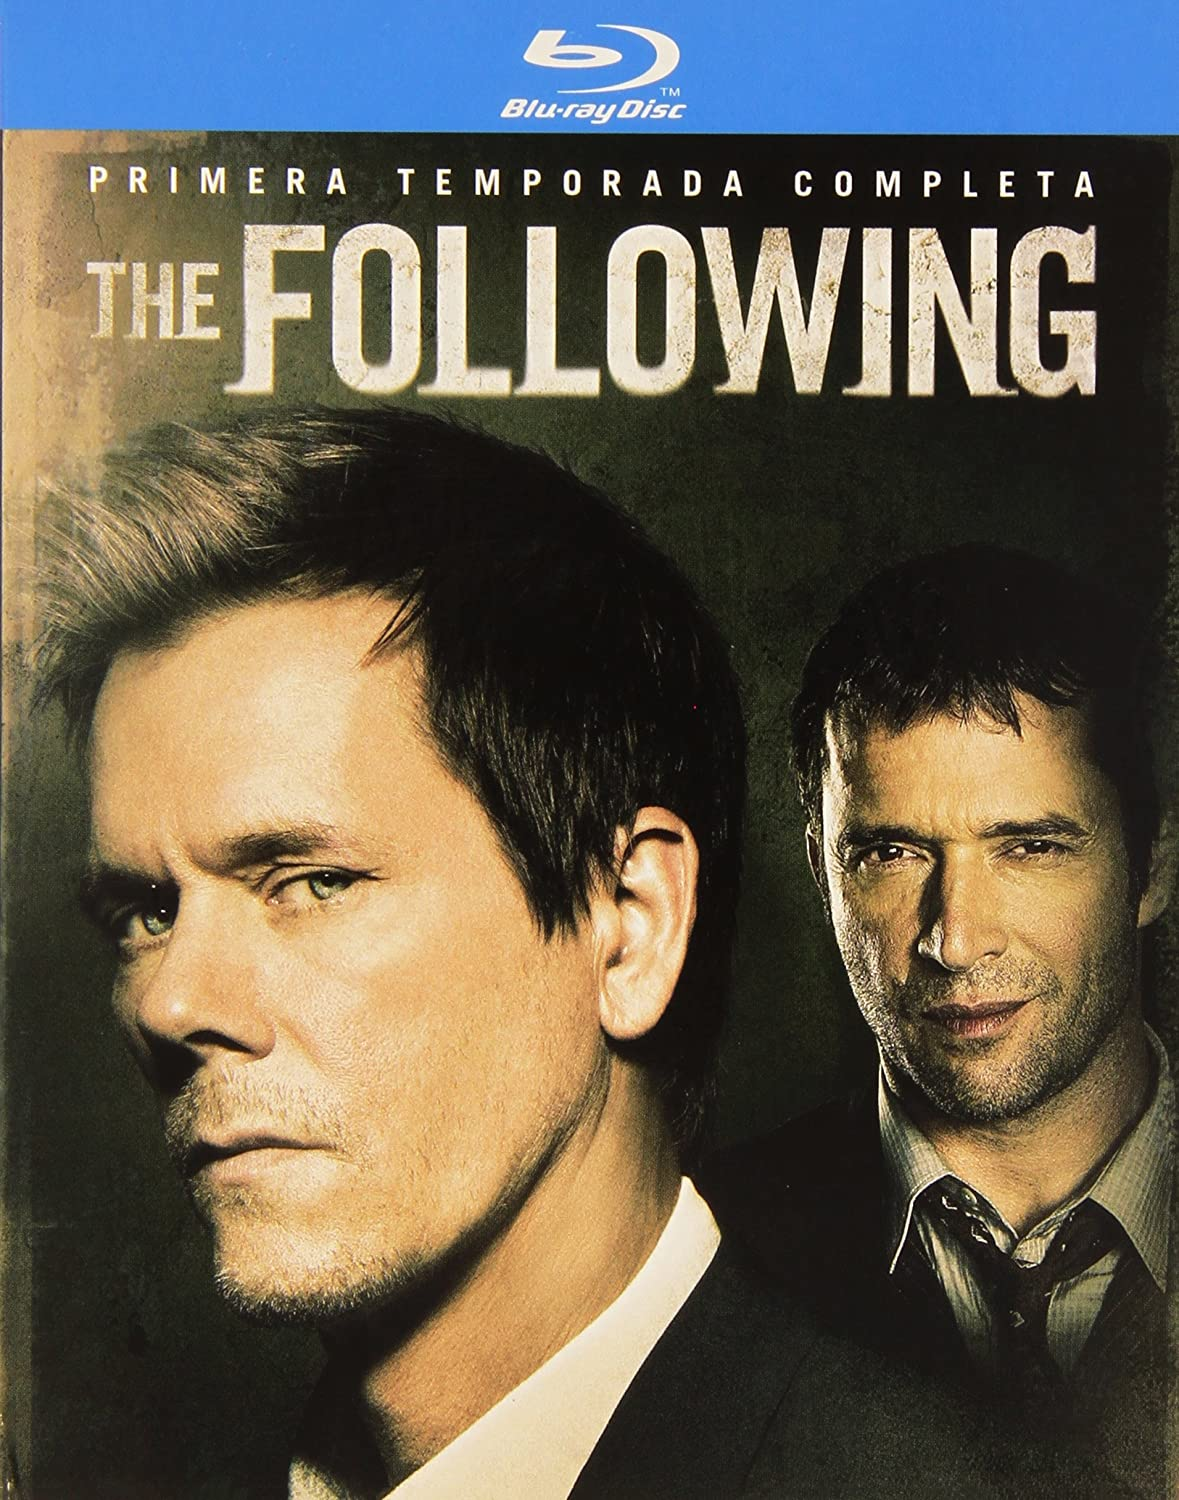 Amazon.com: The Following - Temporada 1 [Blu-ray]: Movies & TV